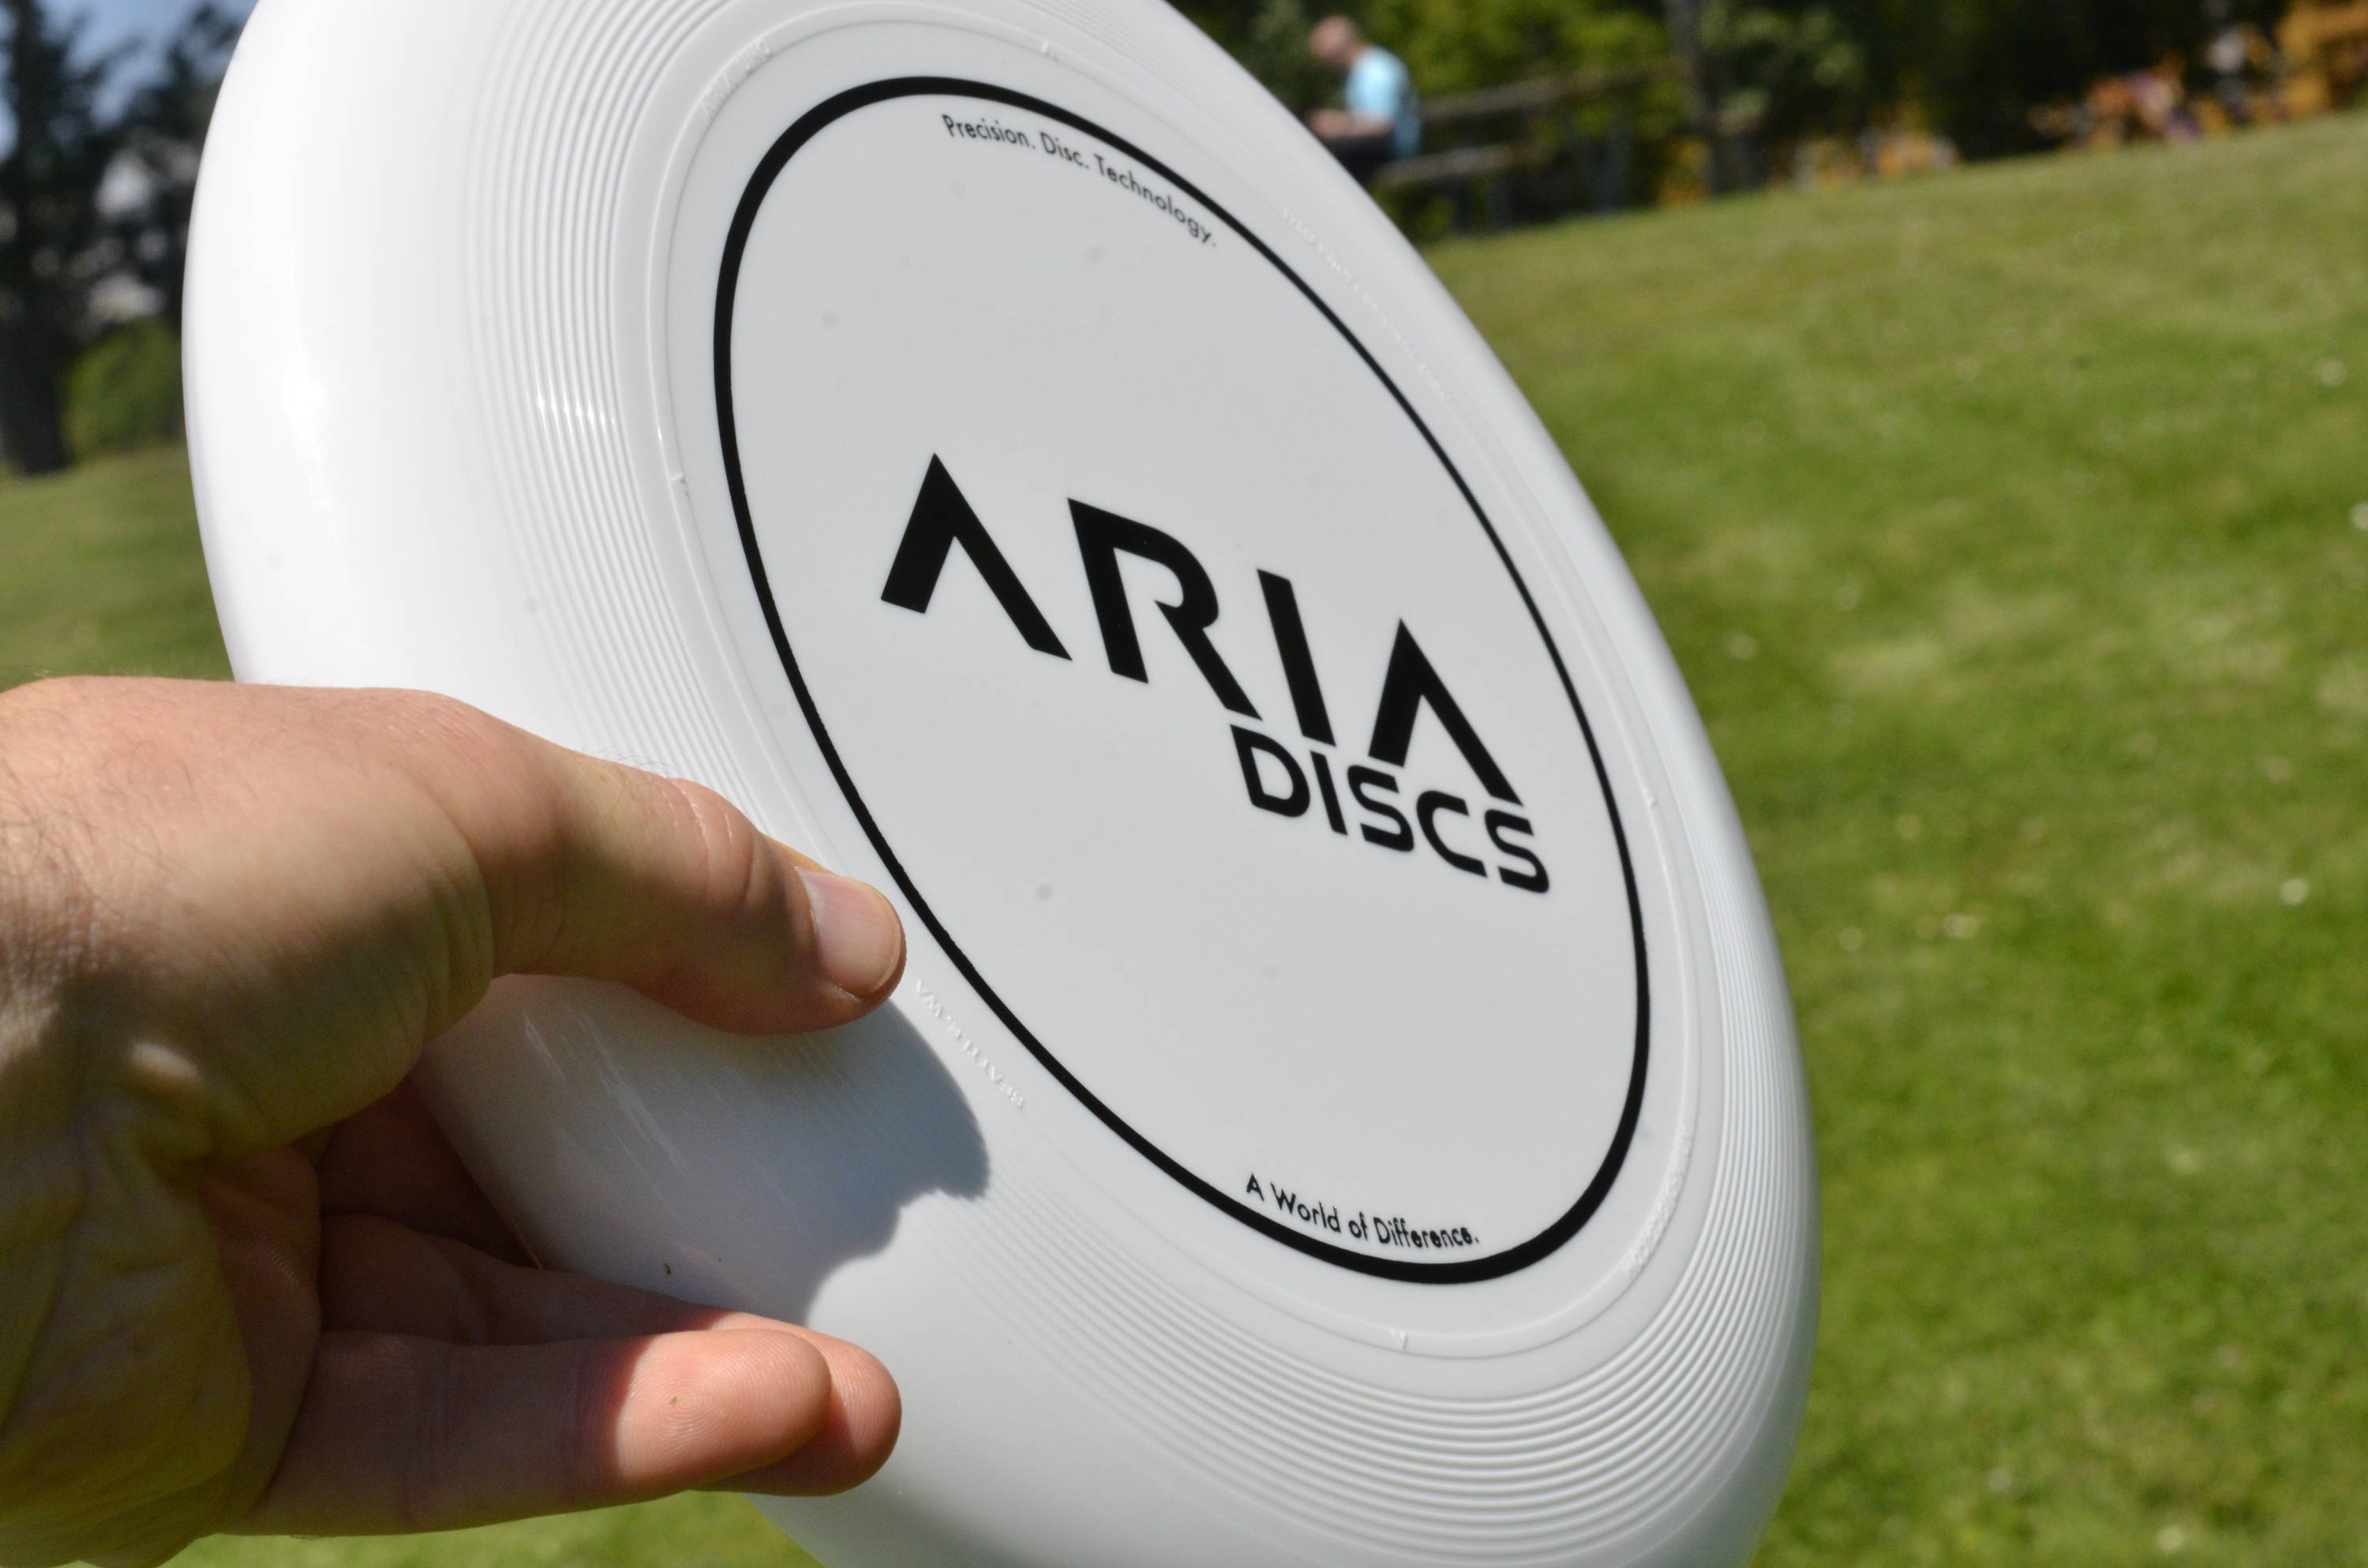 ARIA professional official ultimate flying disc for the sport commonly known as 'ultimate frisbee' news and press